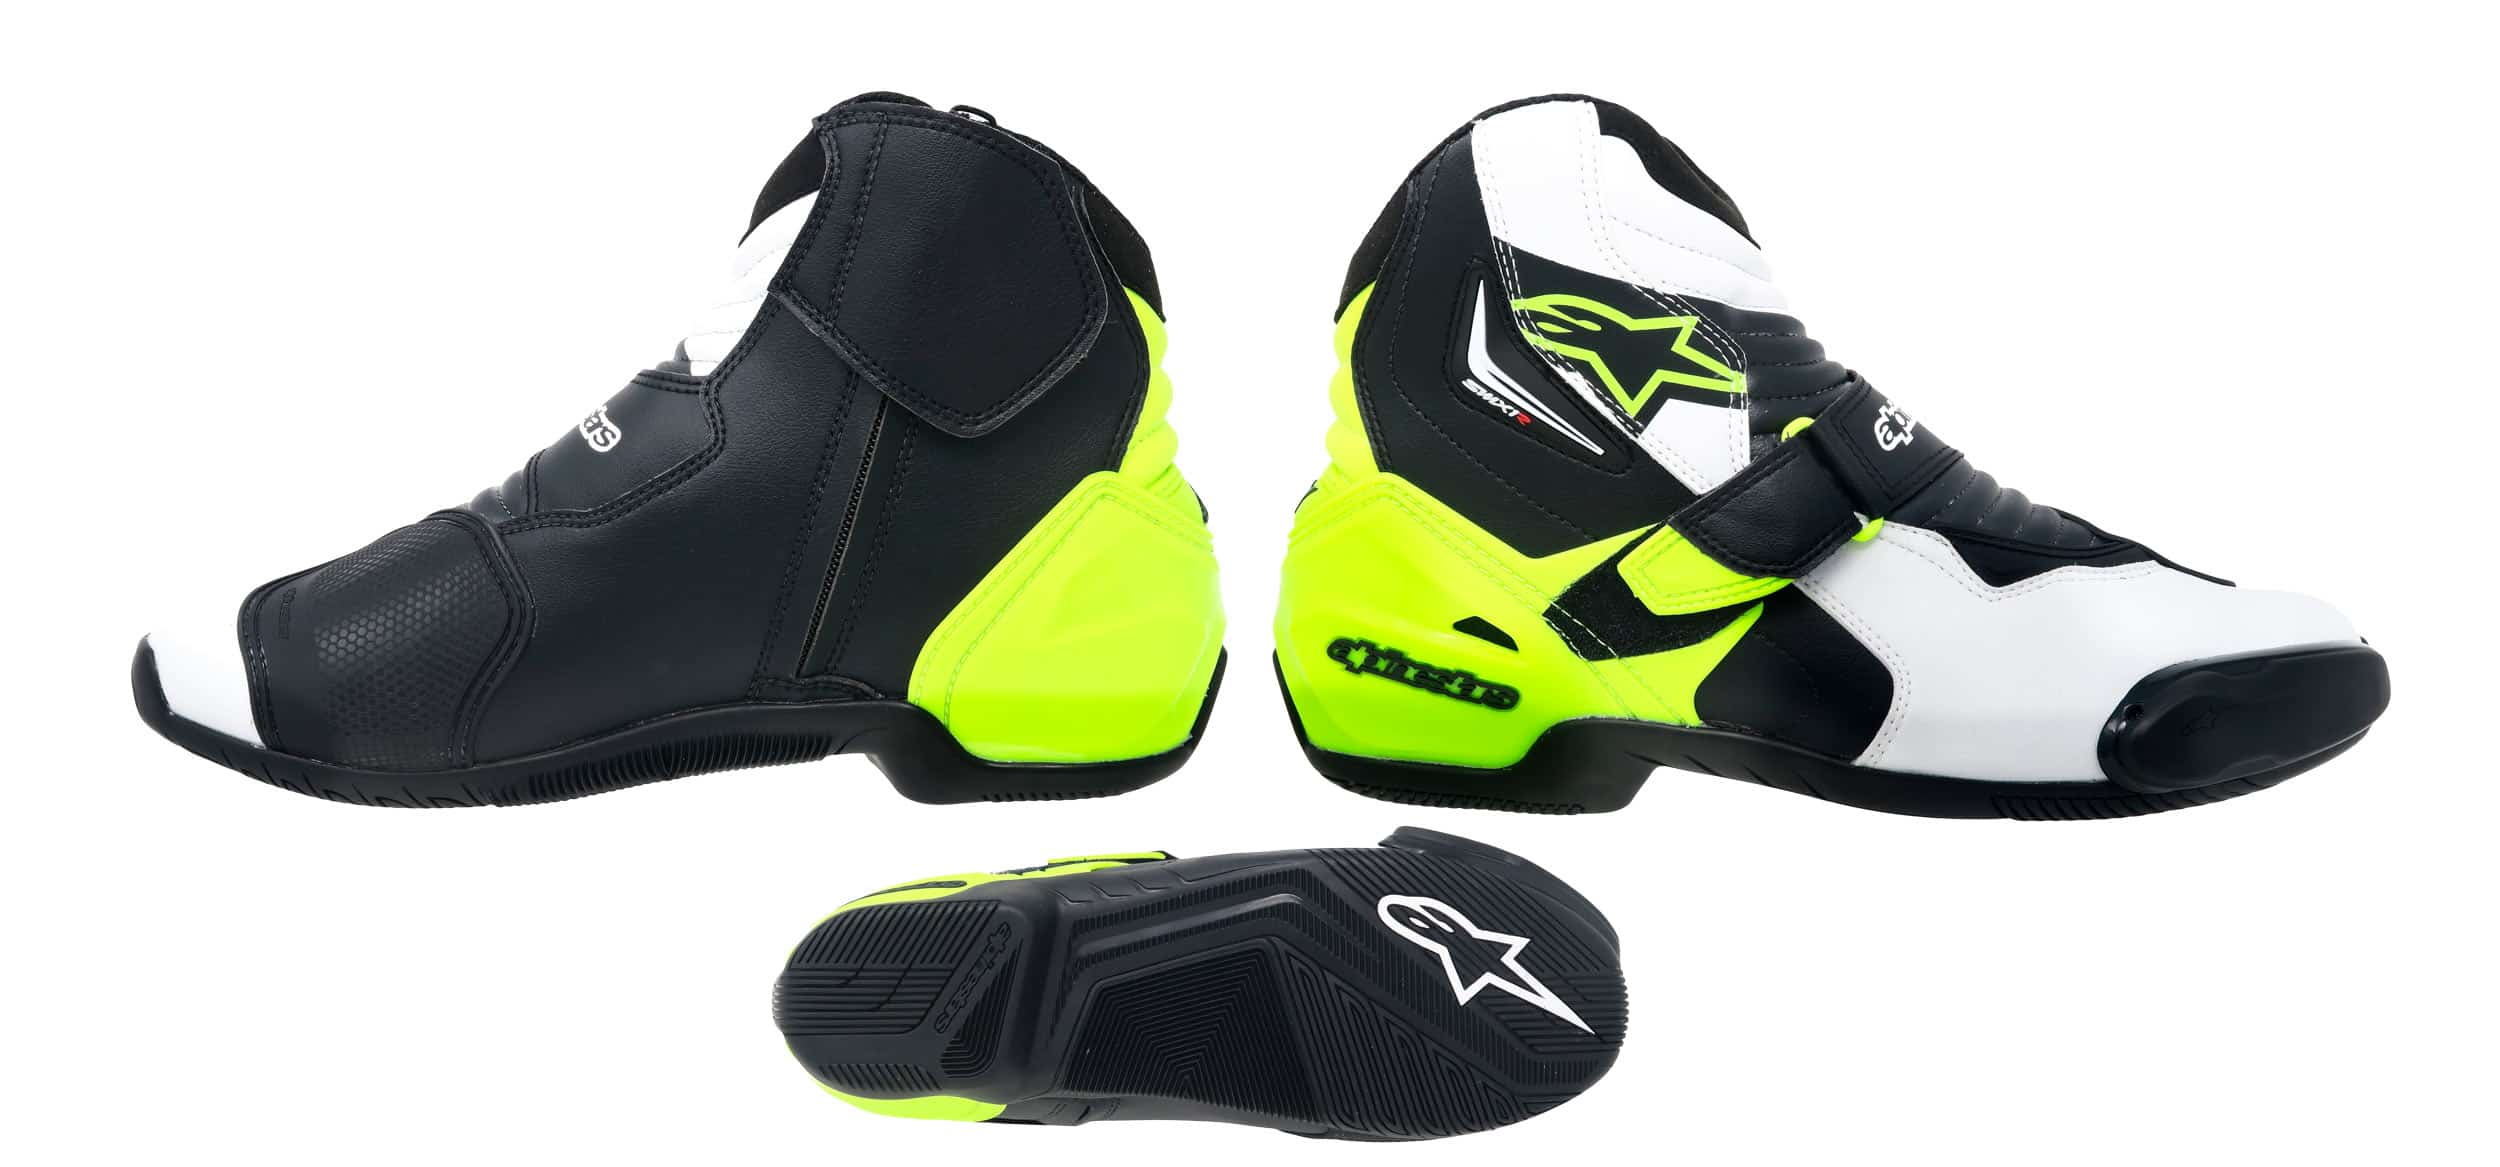 Alpinestars SMX-1 R riding shoes